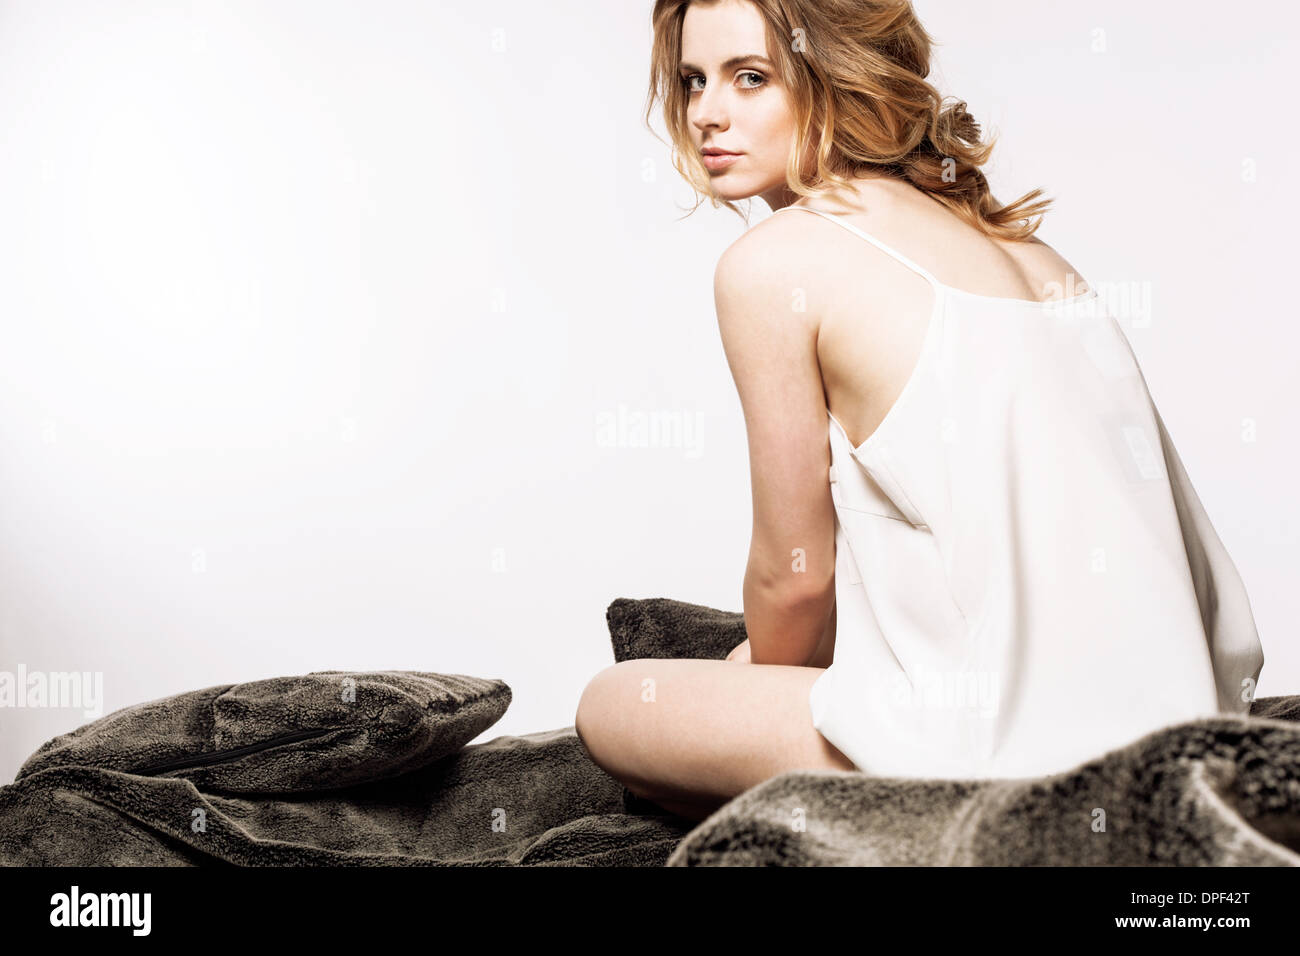 Woman sitting on bed - Stock Image